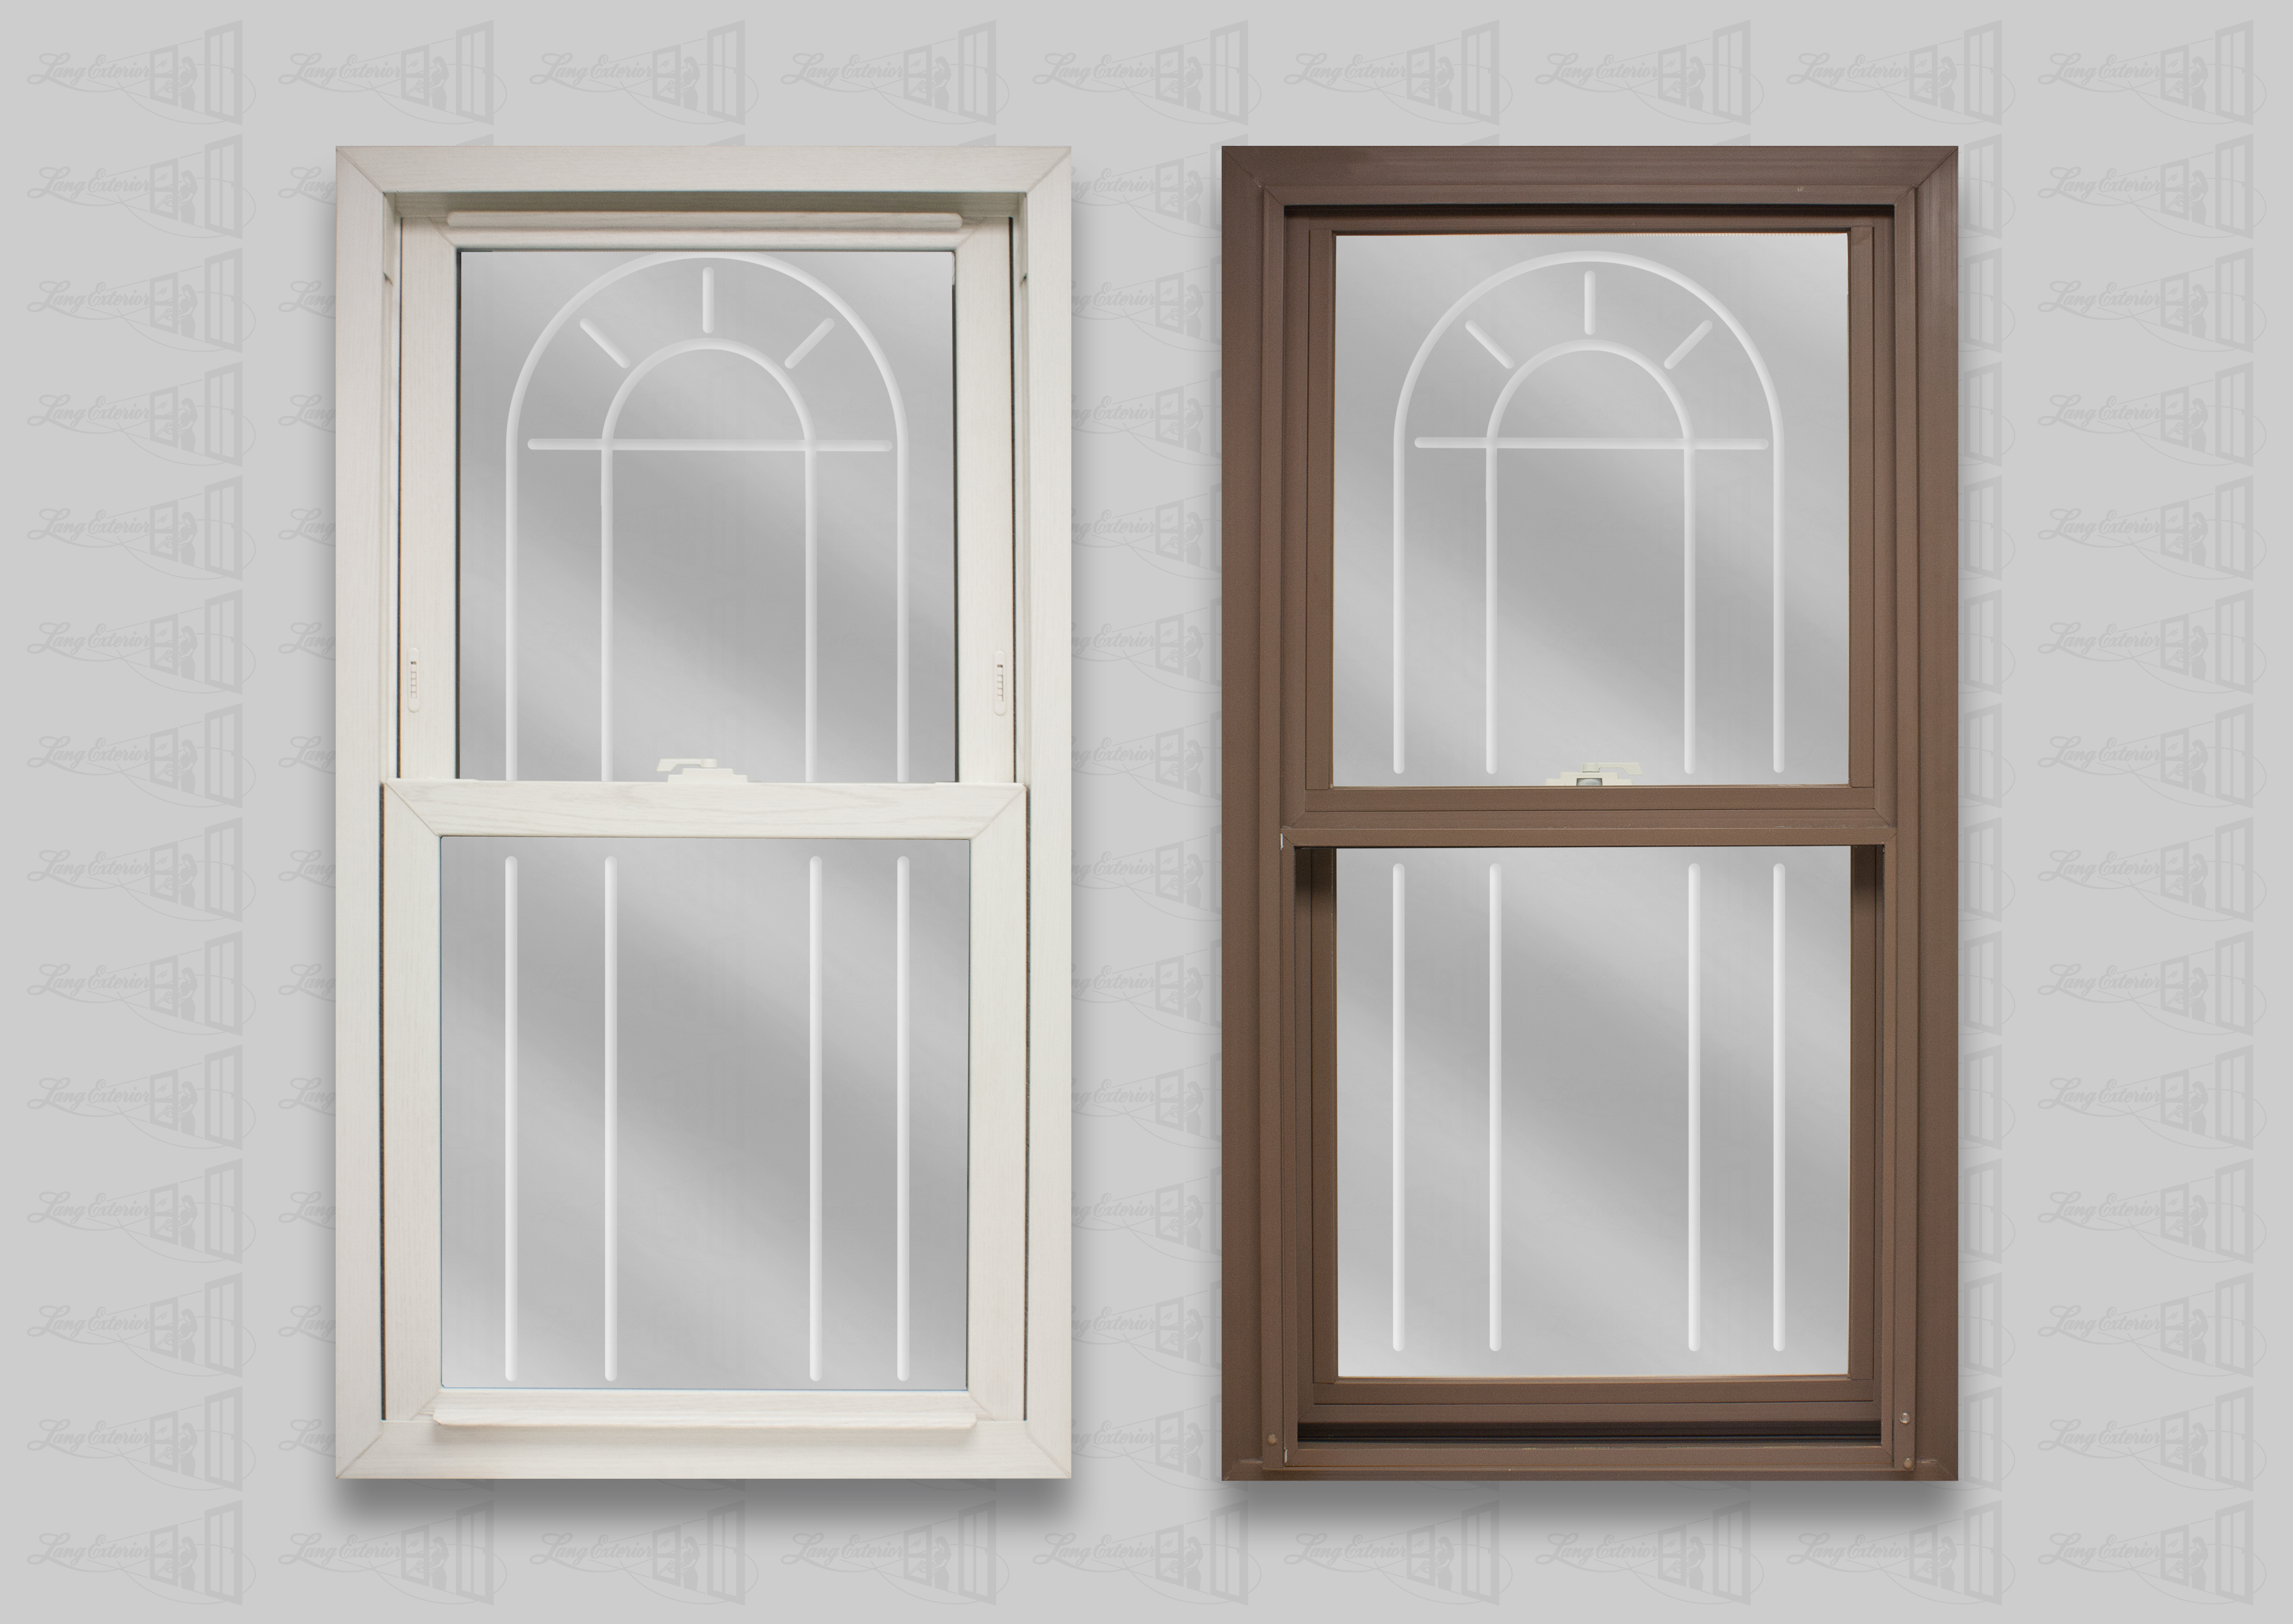 wp lang exterior bengal white cocoa powerweld double hung archview v-groove glass